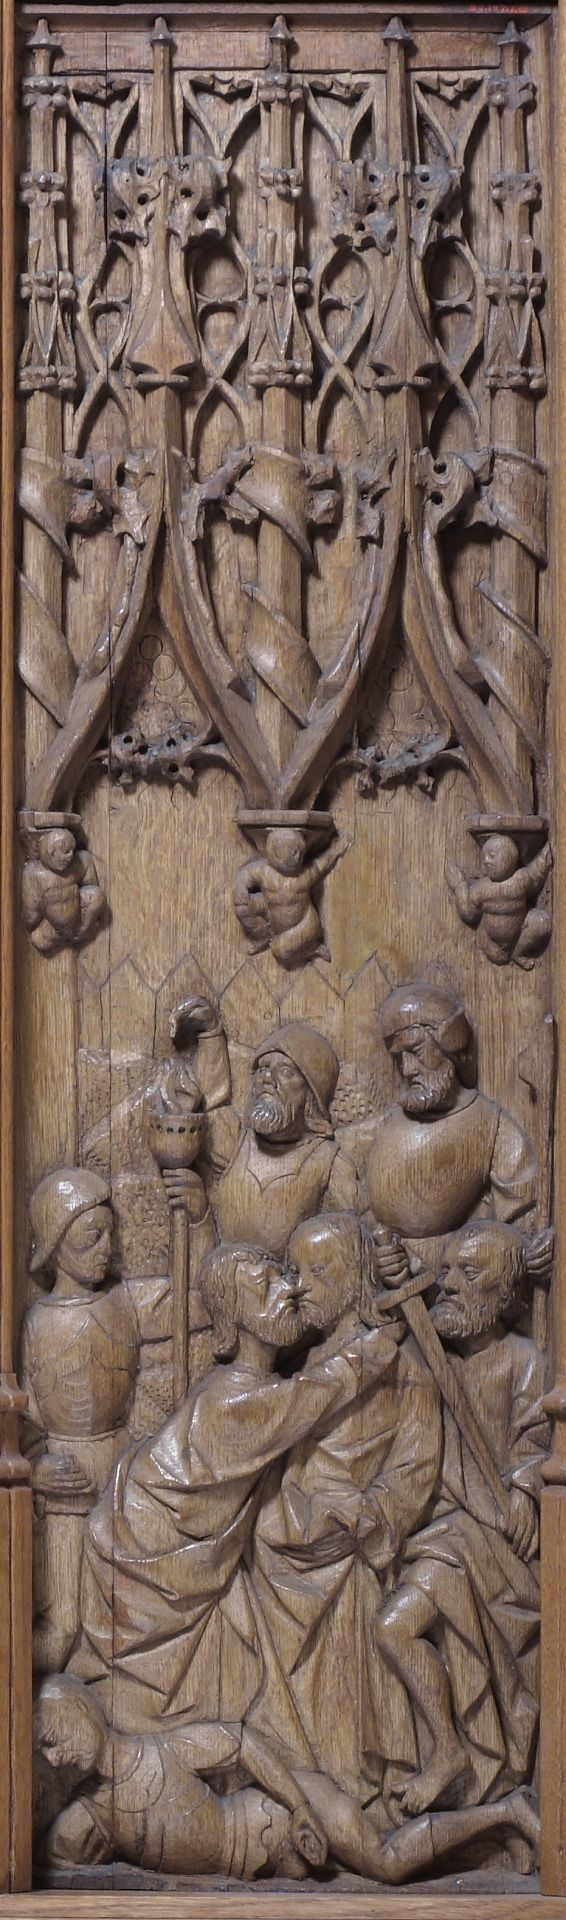 Panel with the Kiss of Judas via The Cloisters   Medium: Oak The Cloisters Collection, 1950 Metropolitan Museum of Art, New York, NY